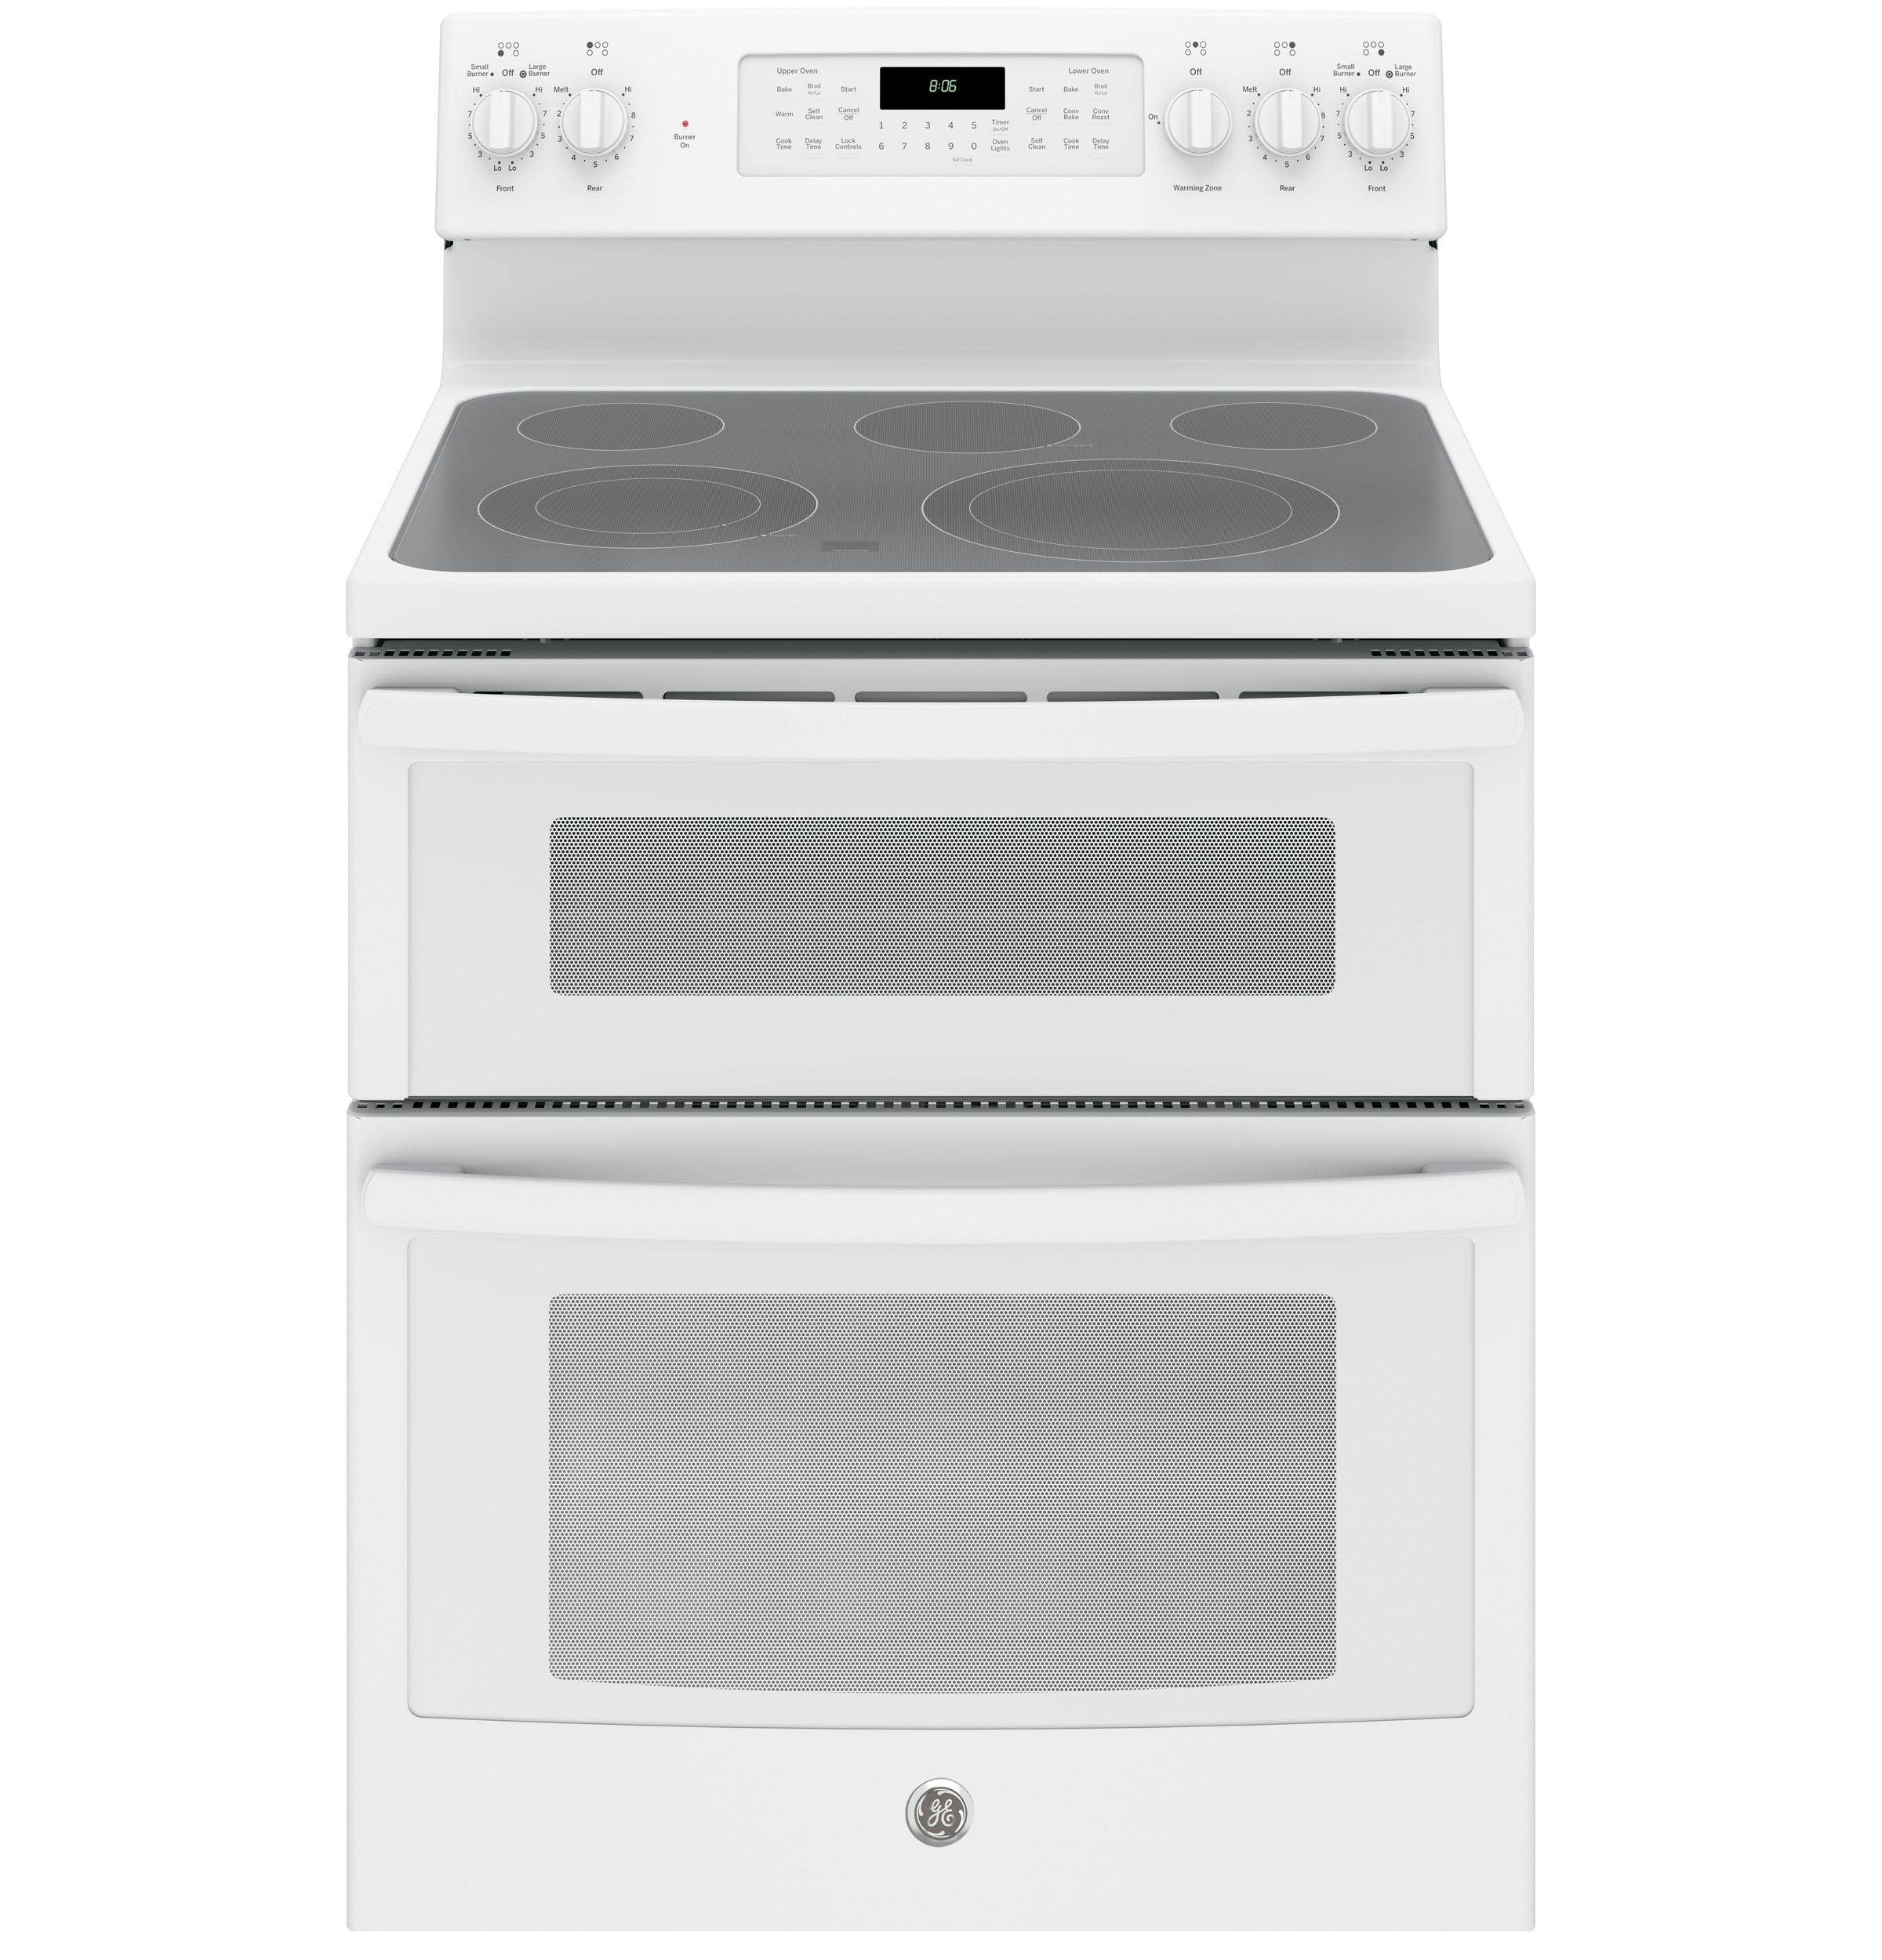 """GE Appliances GE Electric Ranges 30"""" Electric Double Oven Convection Range - Item Number: JB860DJWW"""